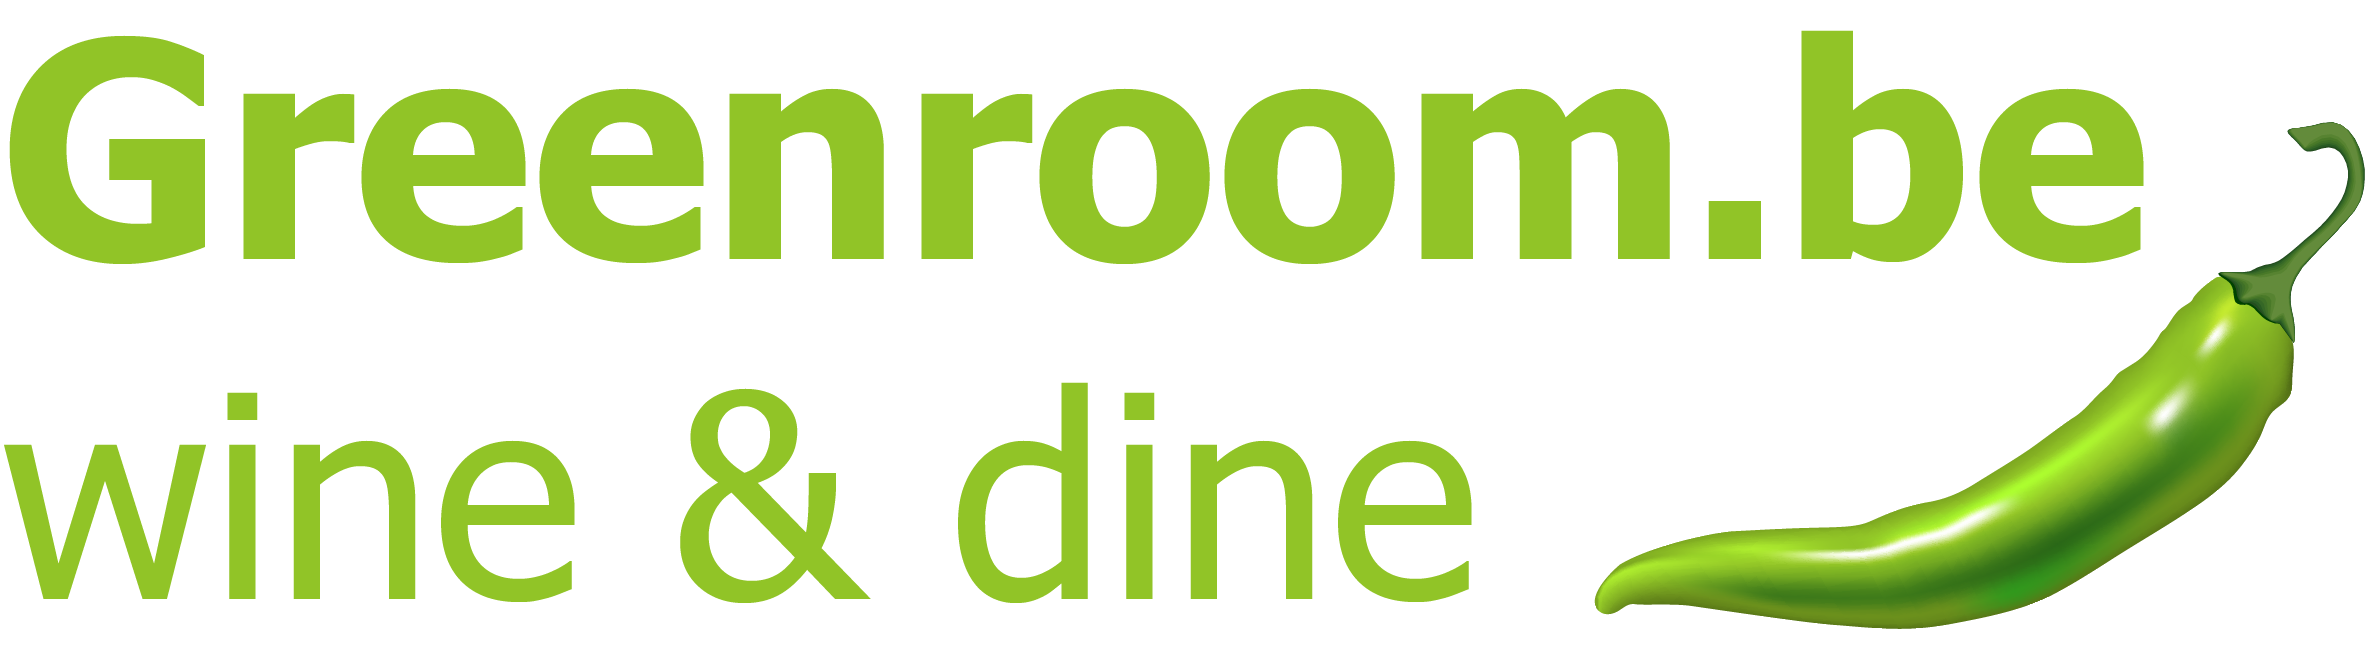 logo-greenroom-DEFINITIEF-TRANSPARANT